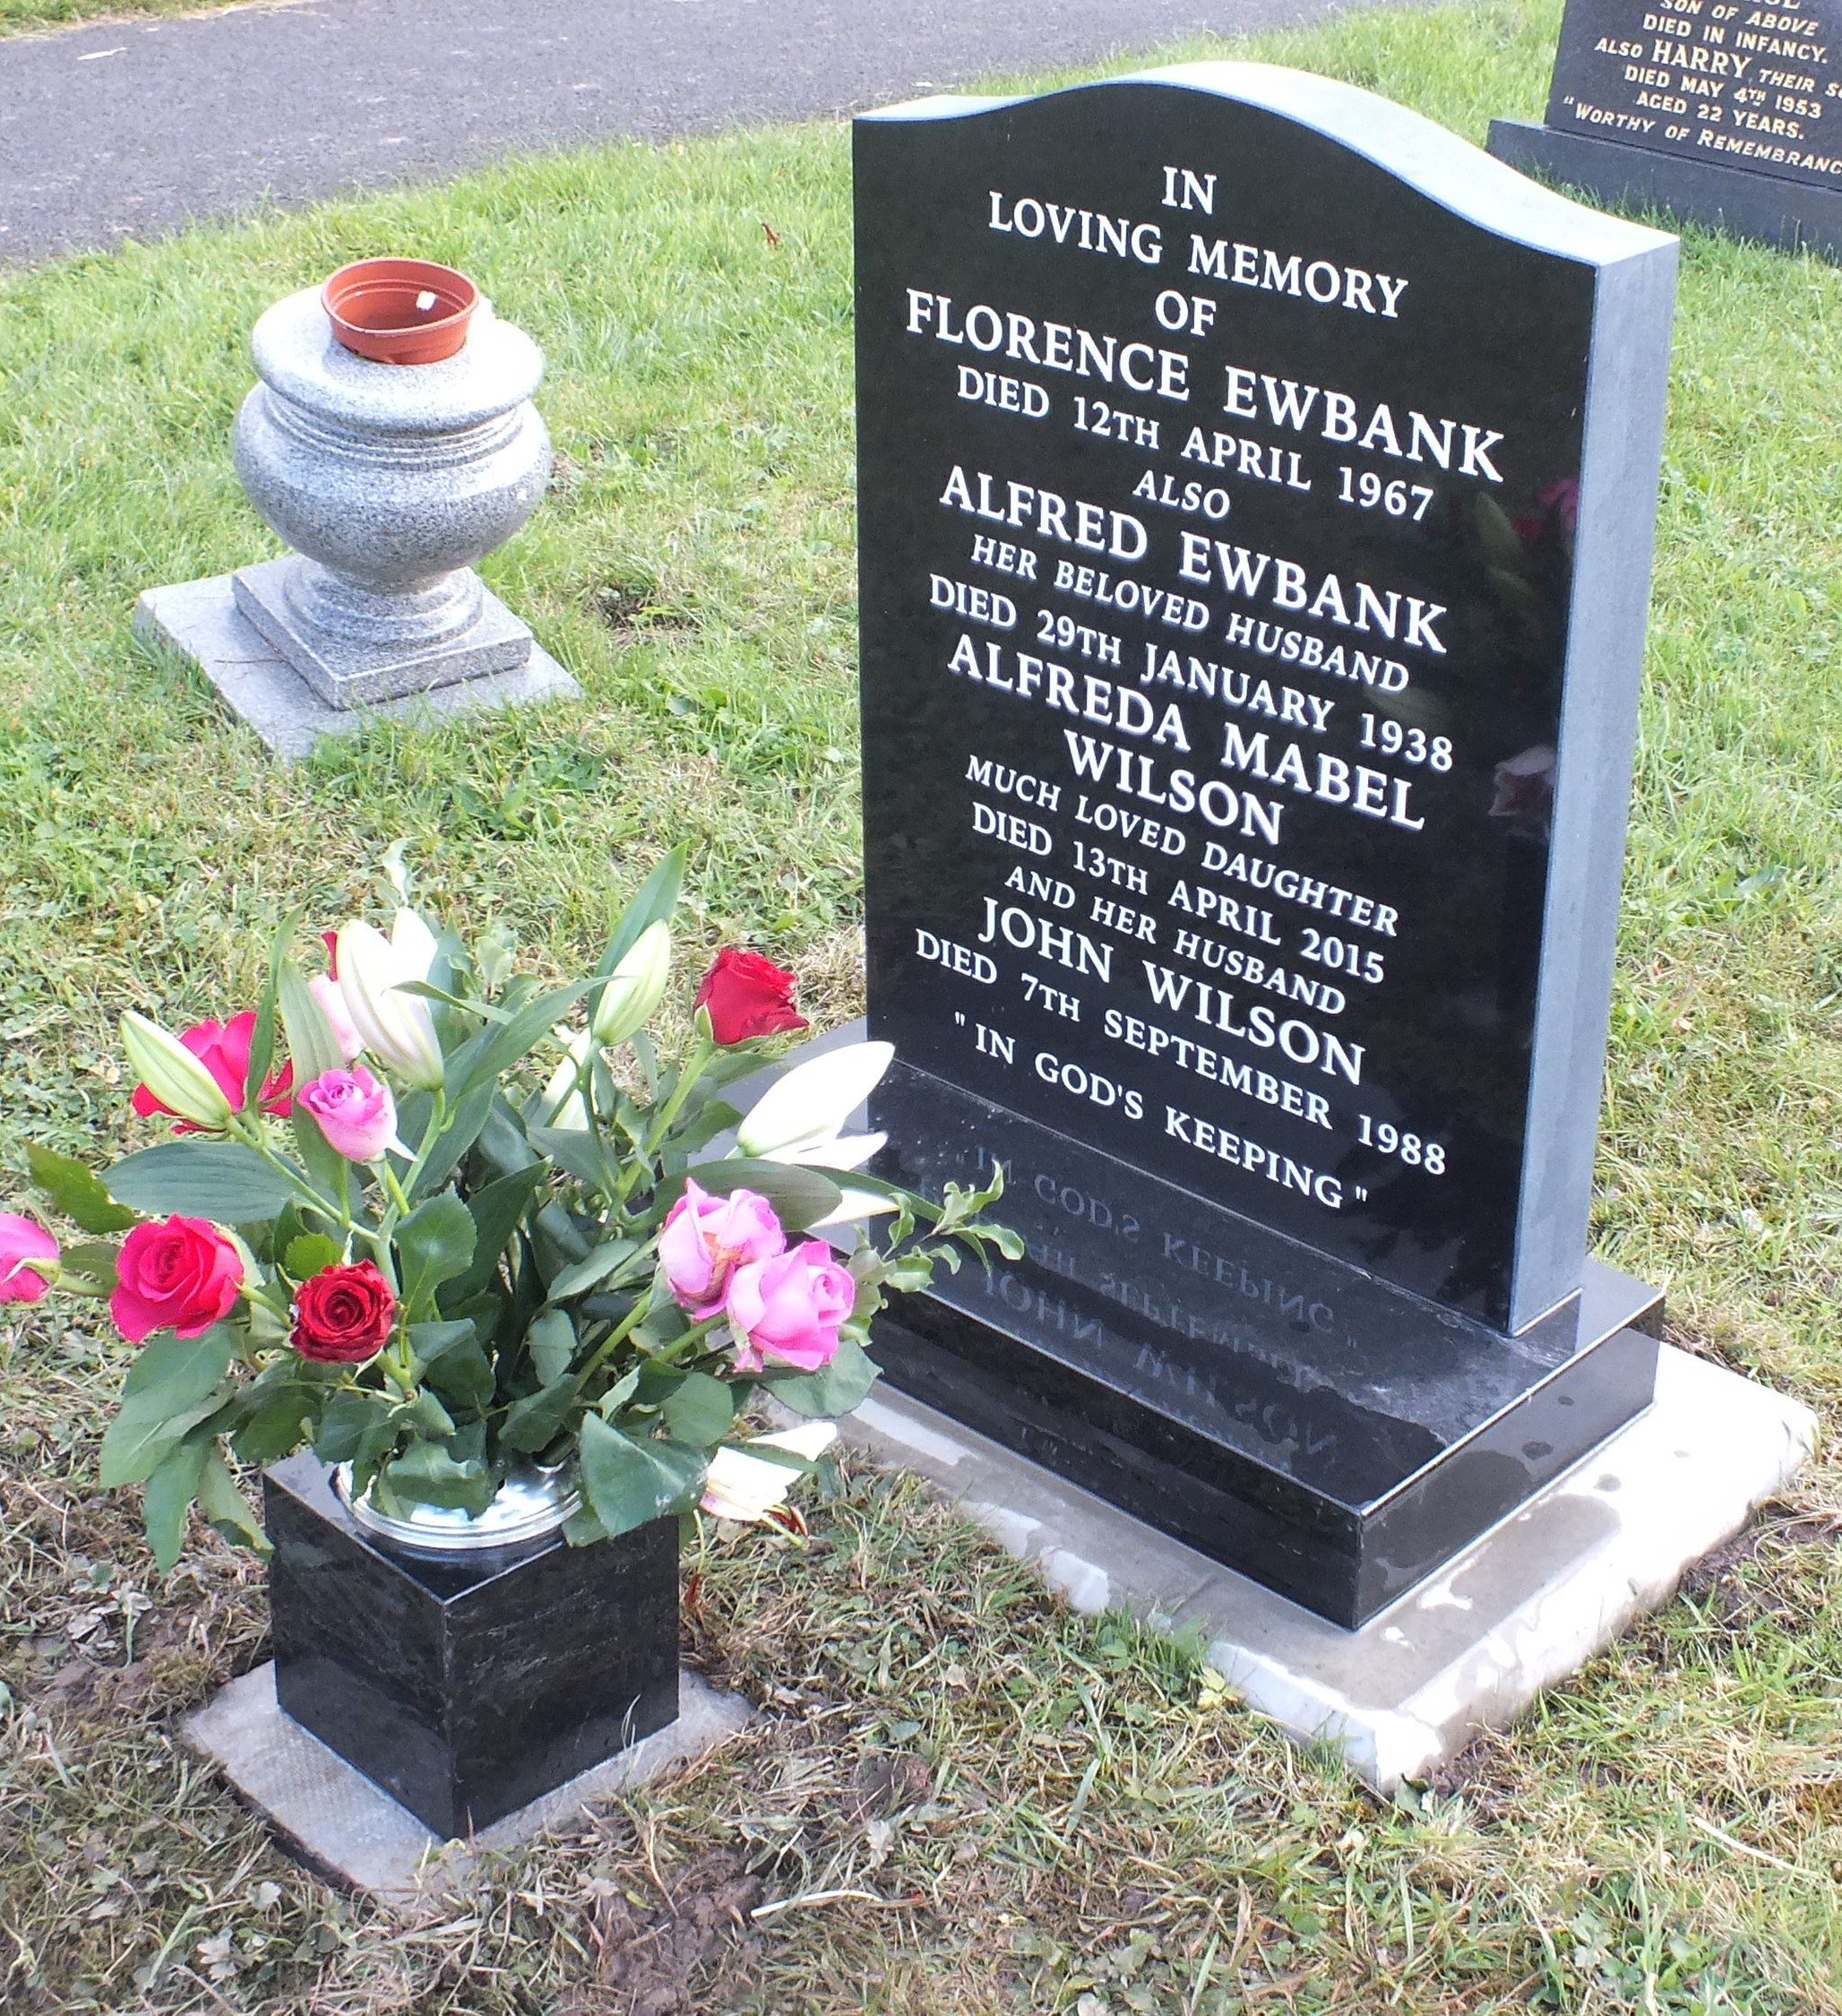 Part polished memorial with vase